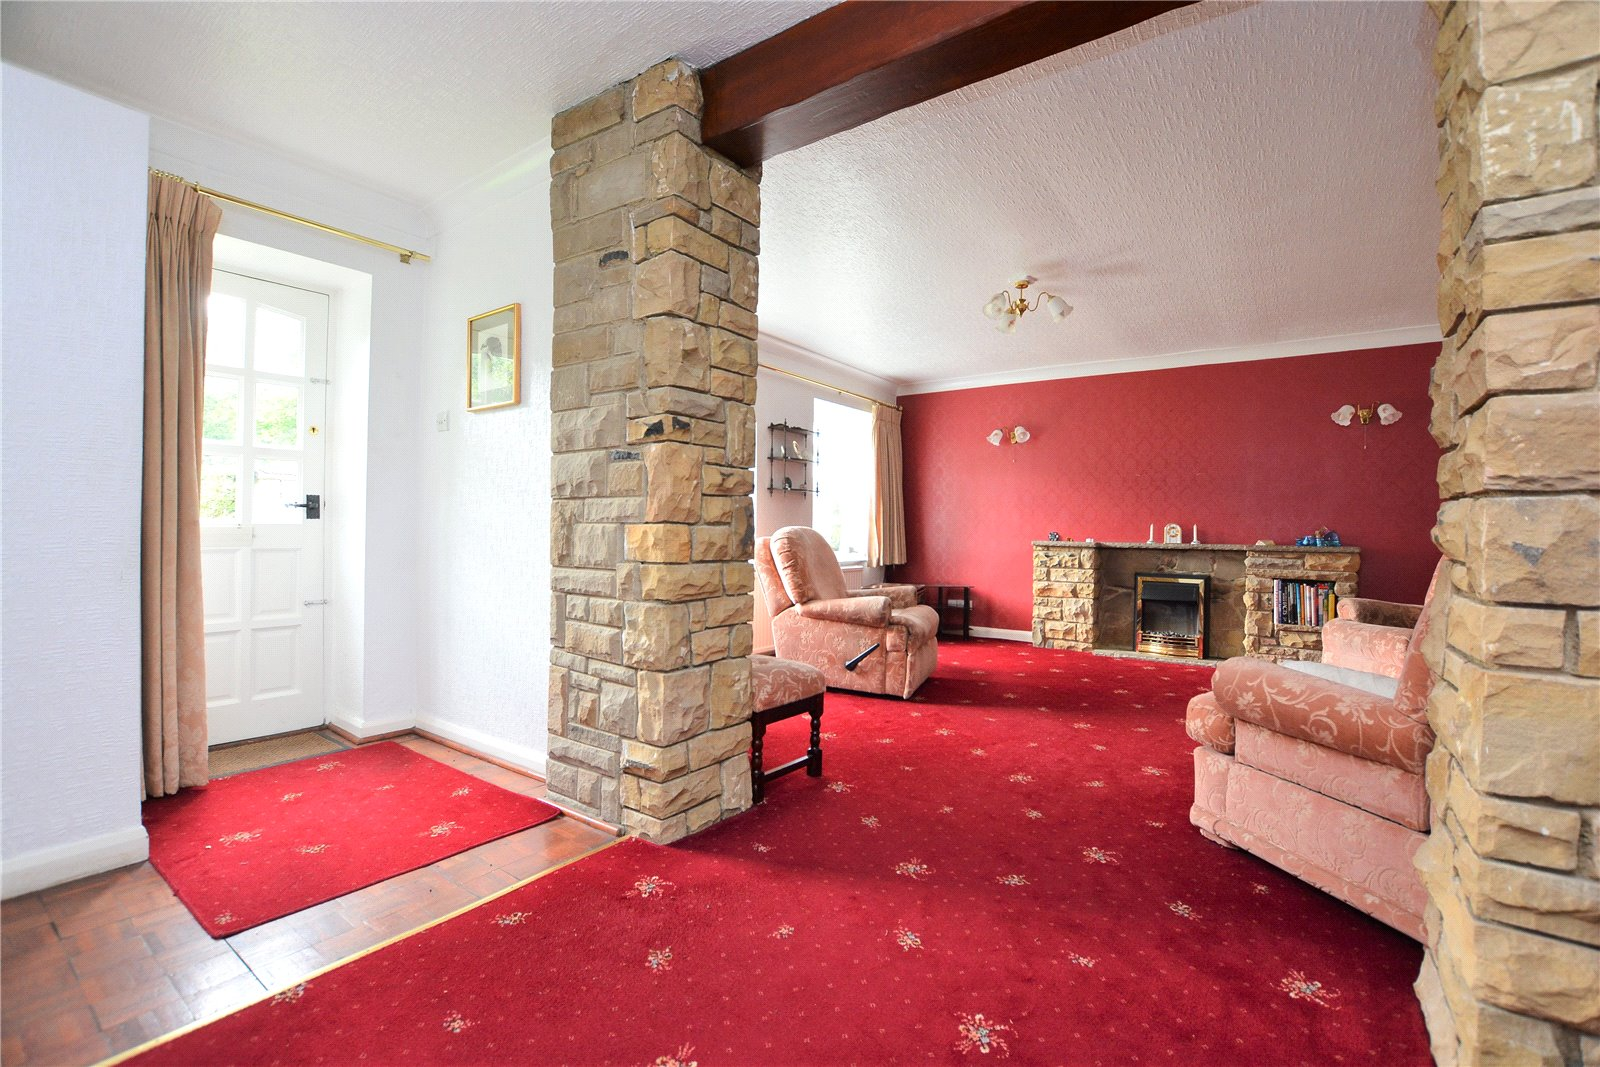 Property for sale in Leeds, Interior hallway and reception room